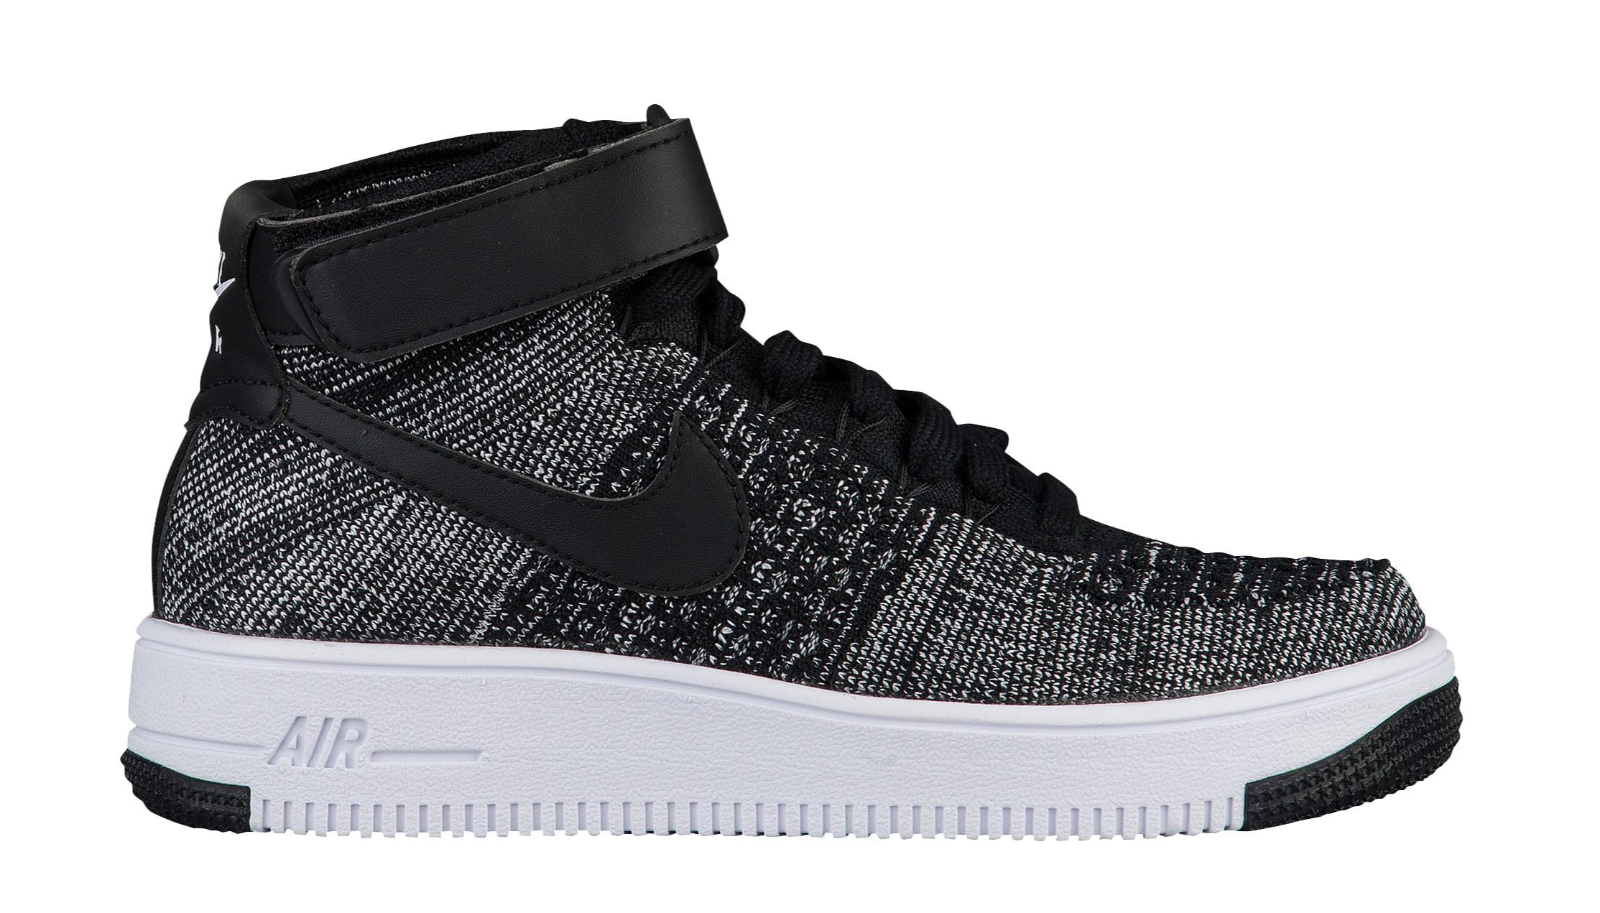 ff3b8c4ba72c Details about Nike Air Force 1 Ultra Flyknit - Boys  Grade School  862824-001 Black White